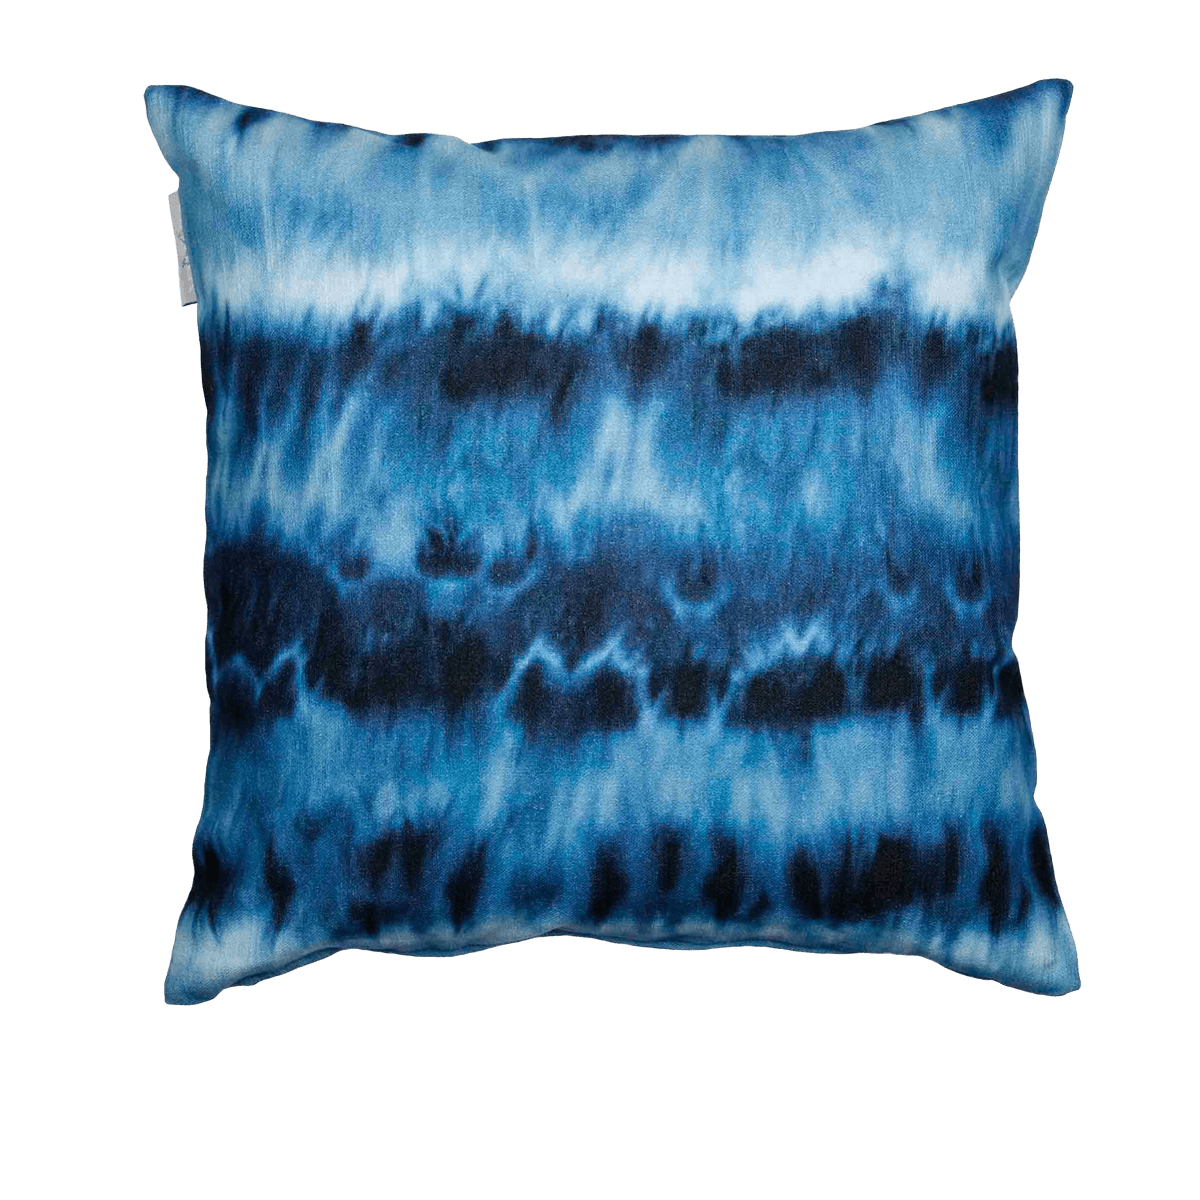 Cushion Cover Tie And Dye The Socialite Family